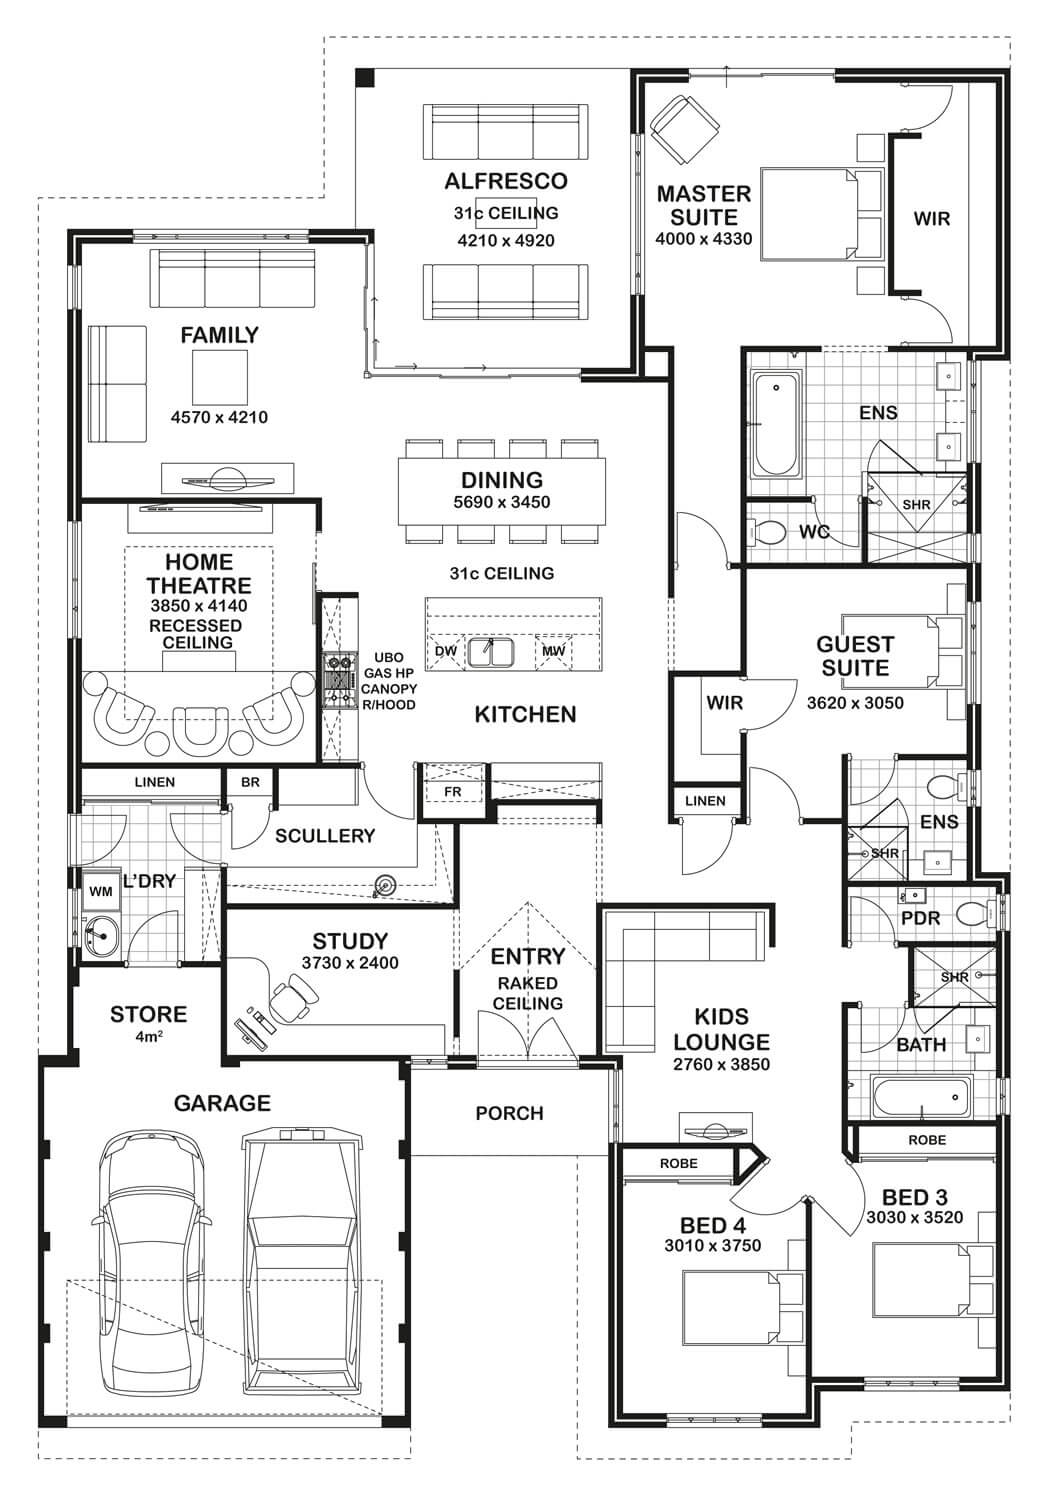 Floor plan friday 4 bedroom 3 bathroom home Home plan drawing